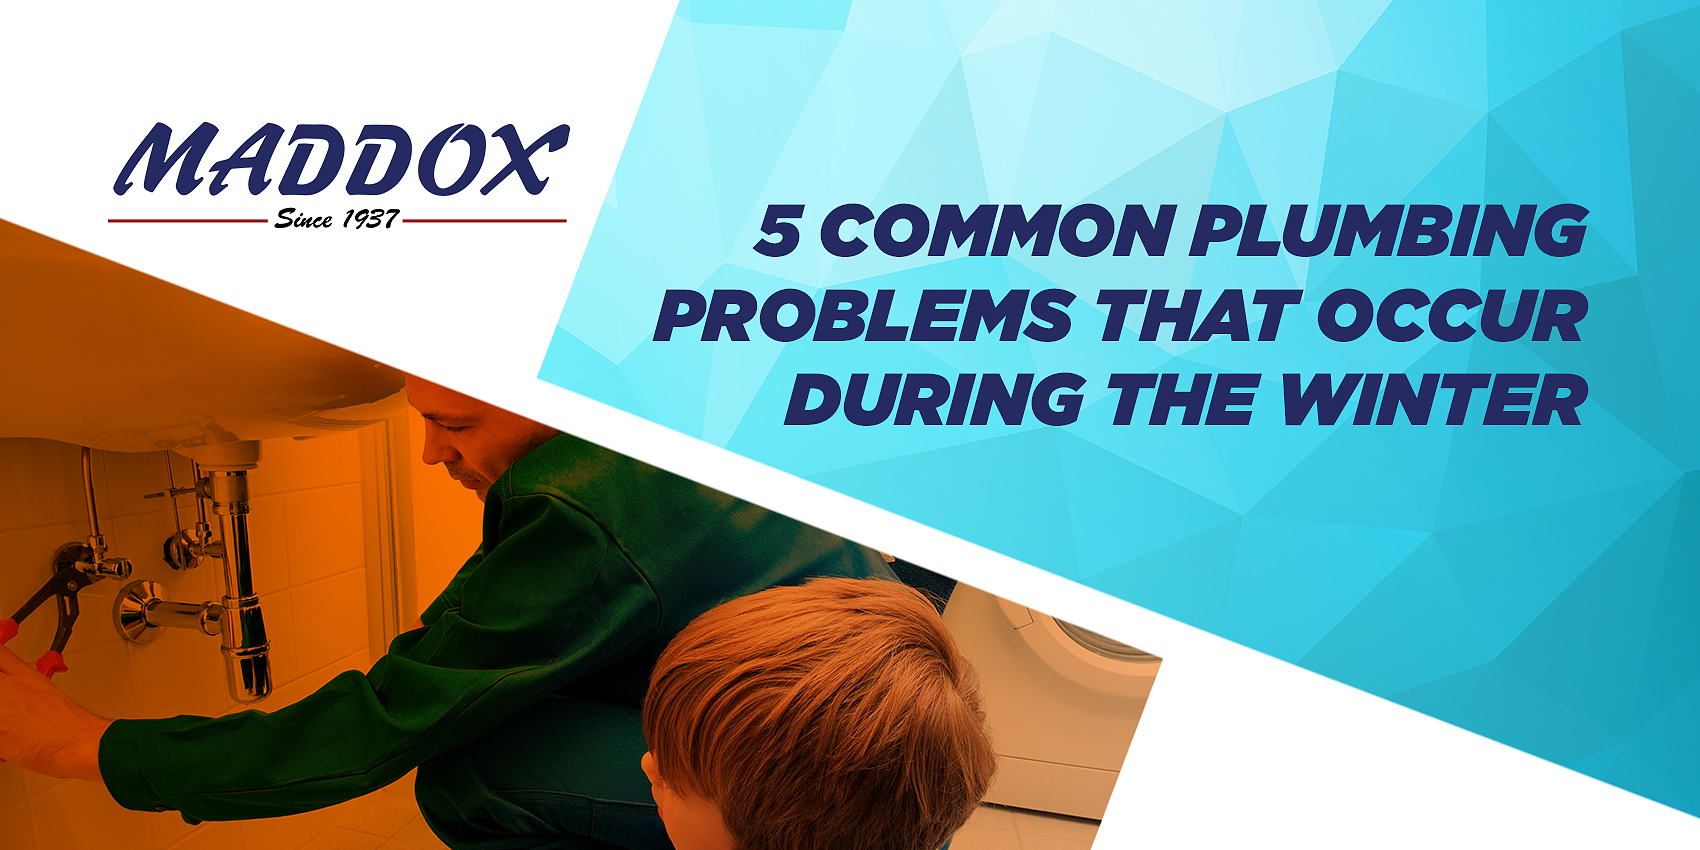 5 Common Plumbing Problems That Occur During the Winter